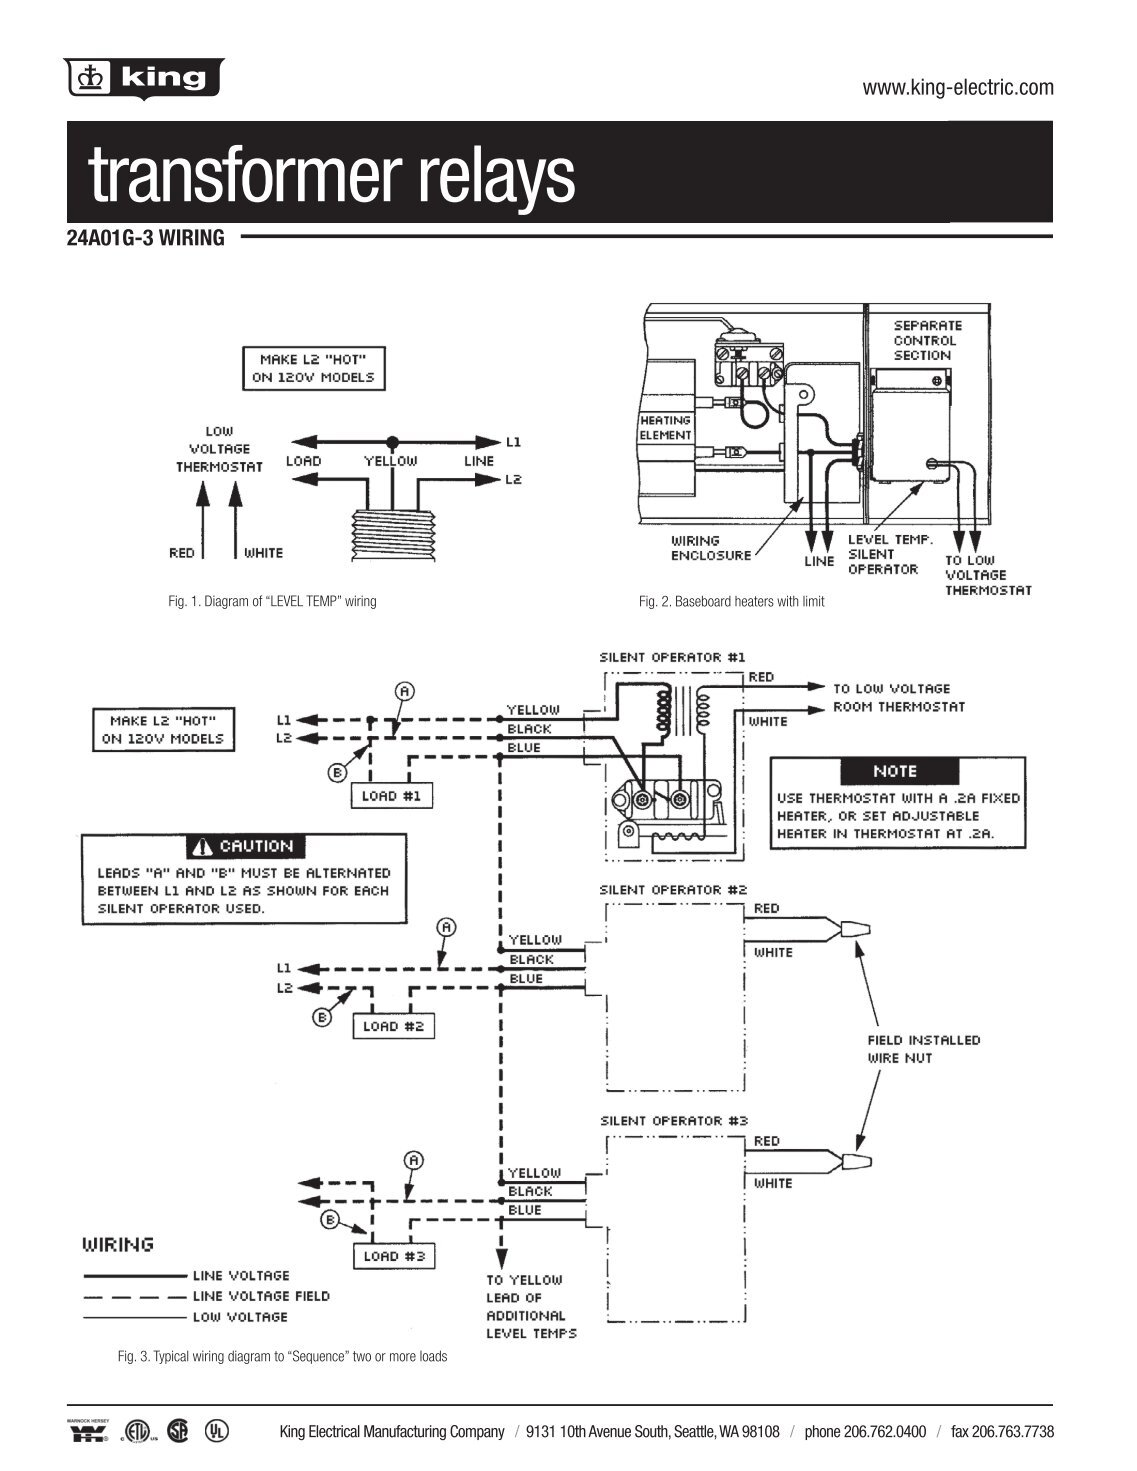 wiring diagram for a hunter thermostat free download wiring diagram rh xwiaw us Hunter Thermostat 44155C Manual Hunter Thermostat 44155C Problems